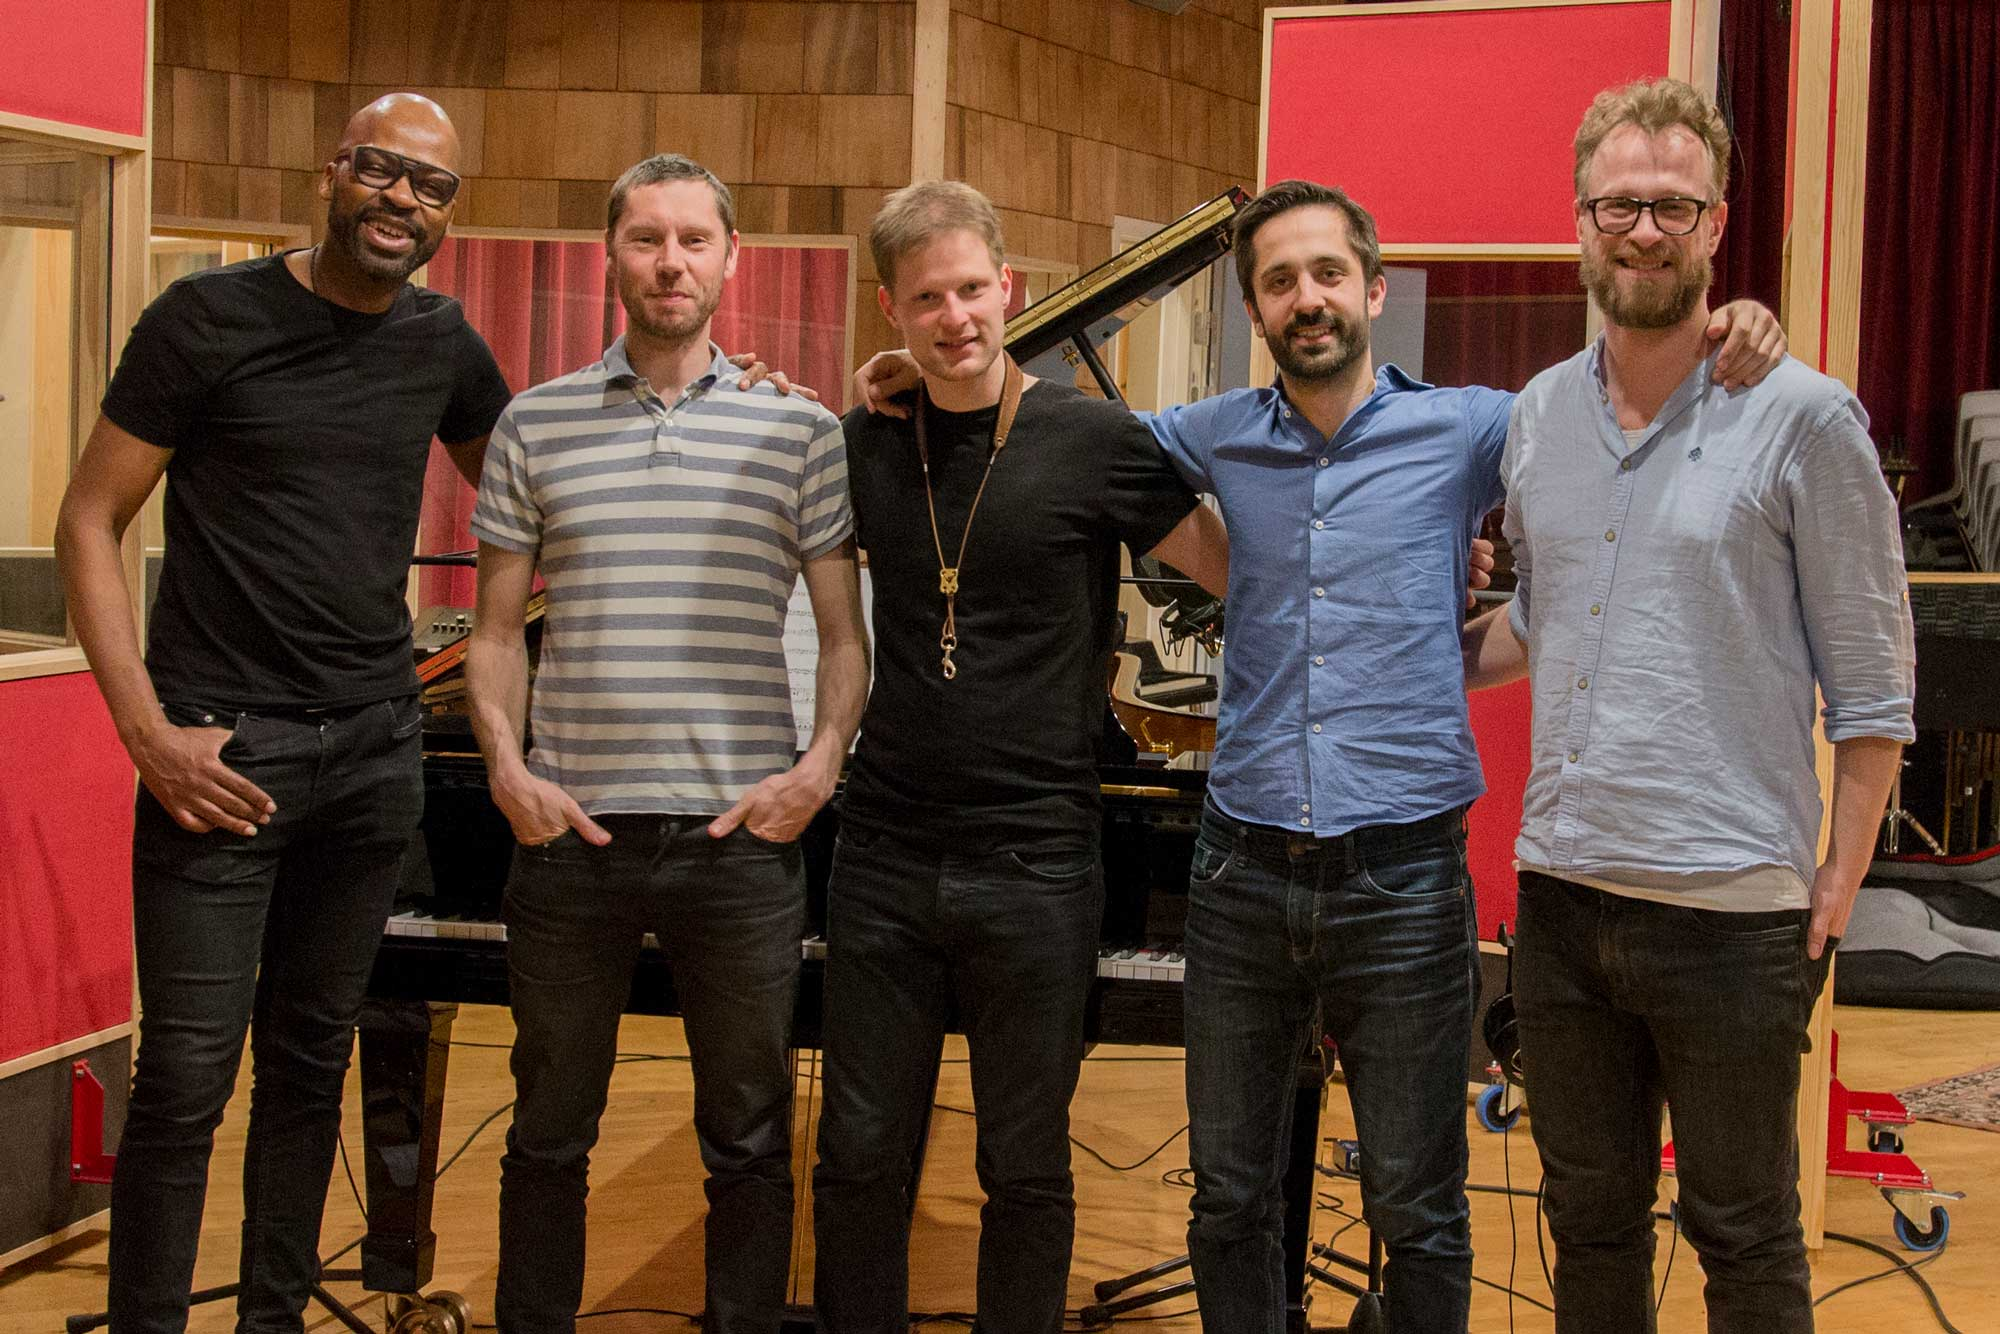 Lubos soukup Quartet in a recording studio with Lionel Loueke